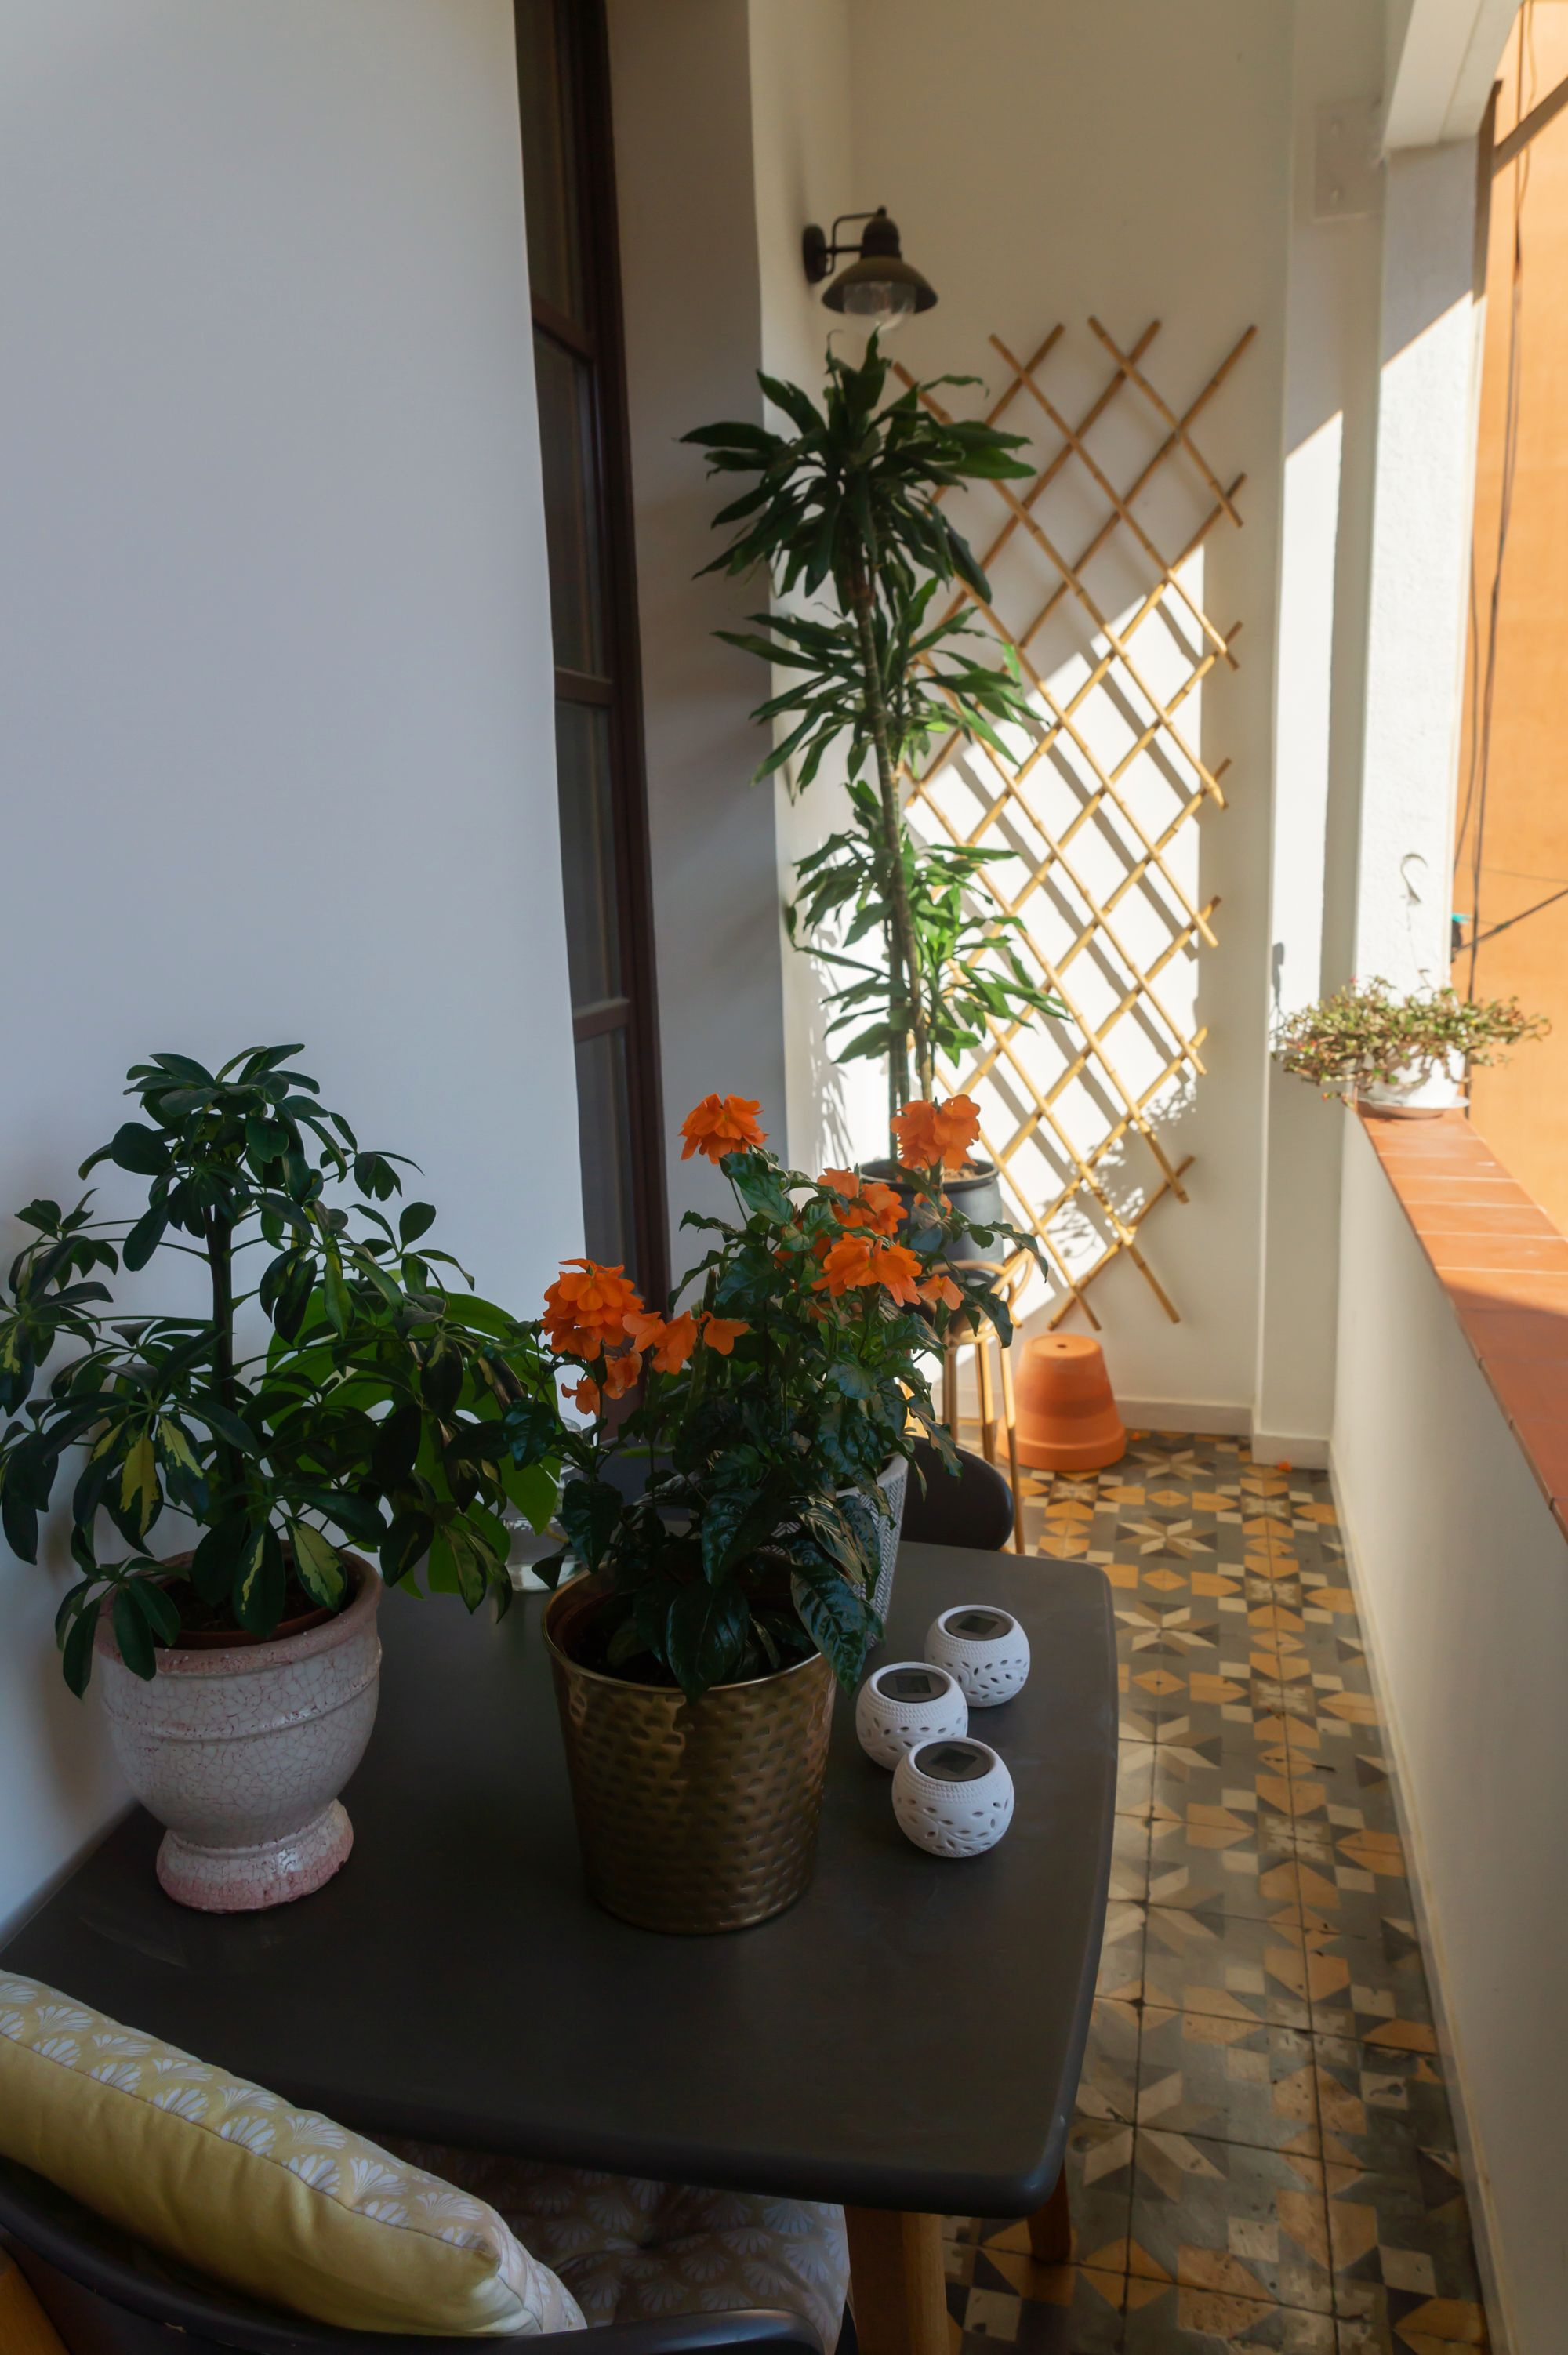 Gemma home tour Barcelona balcony with plants and tile floor